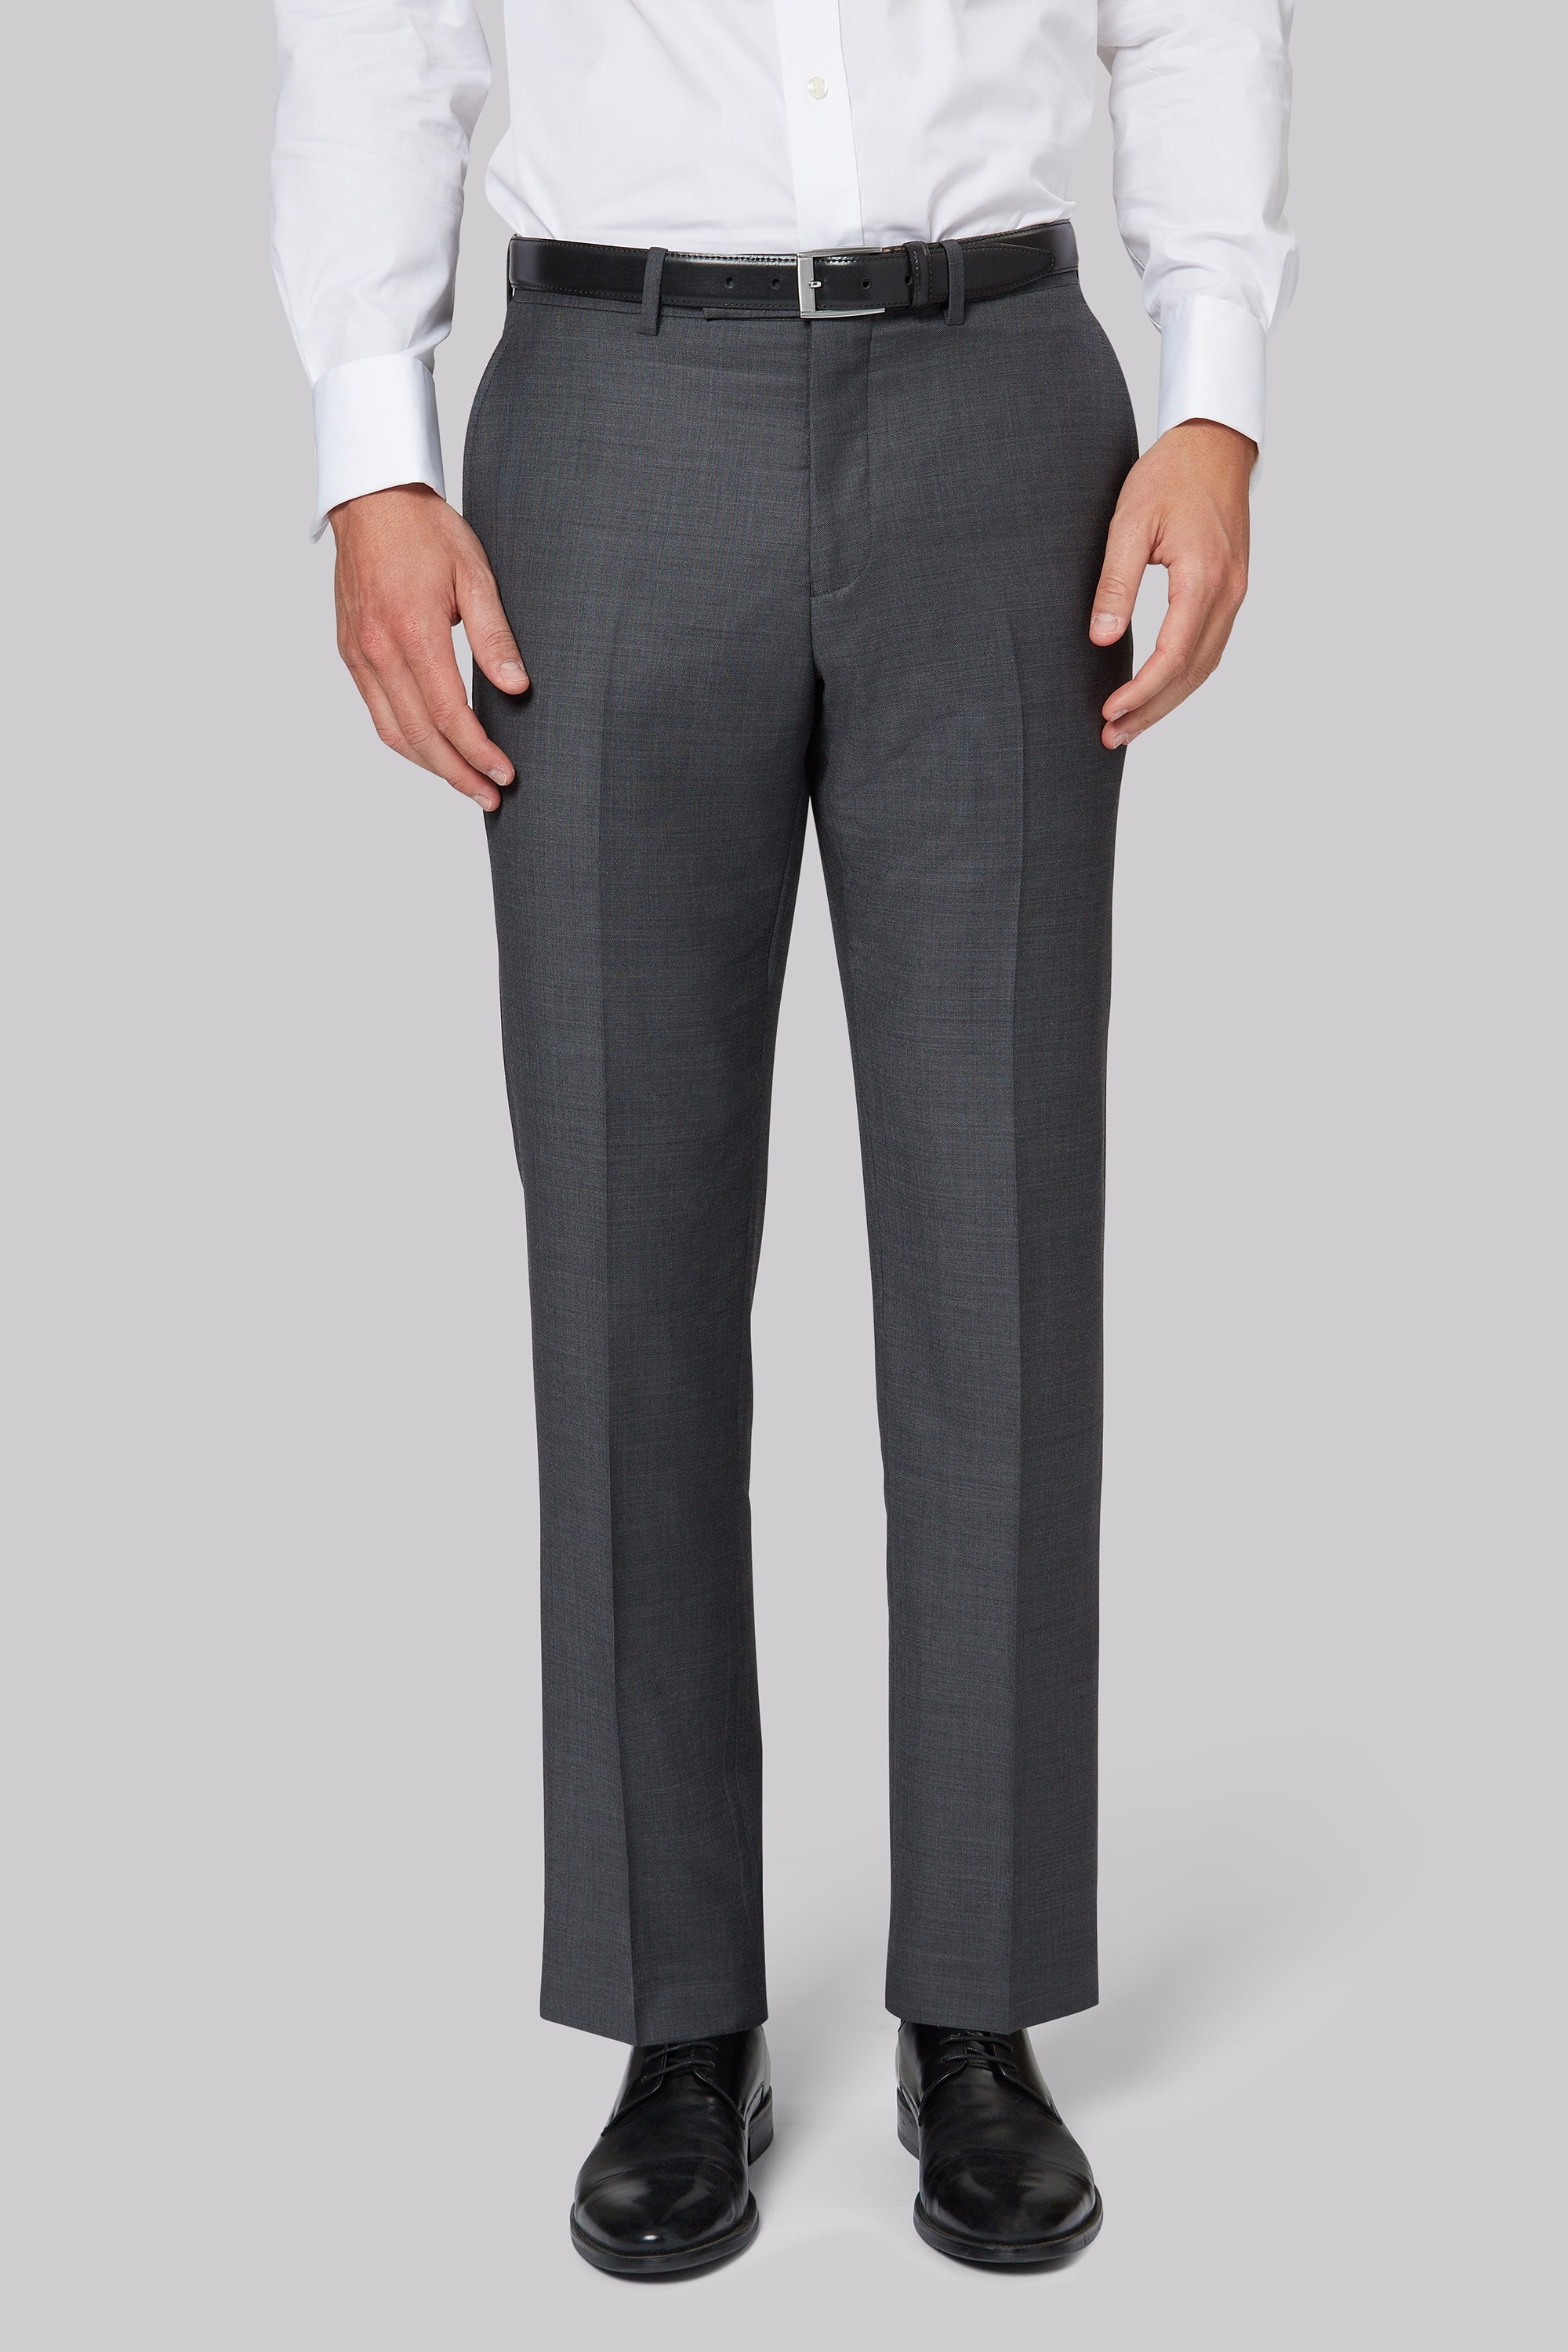 Ermenegildo Zegna Cloth Regular Fit Grey Trousers